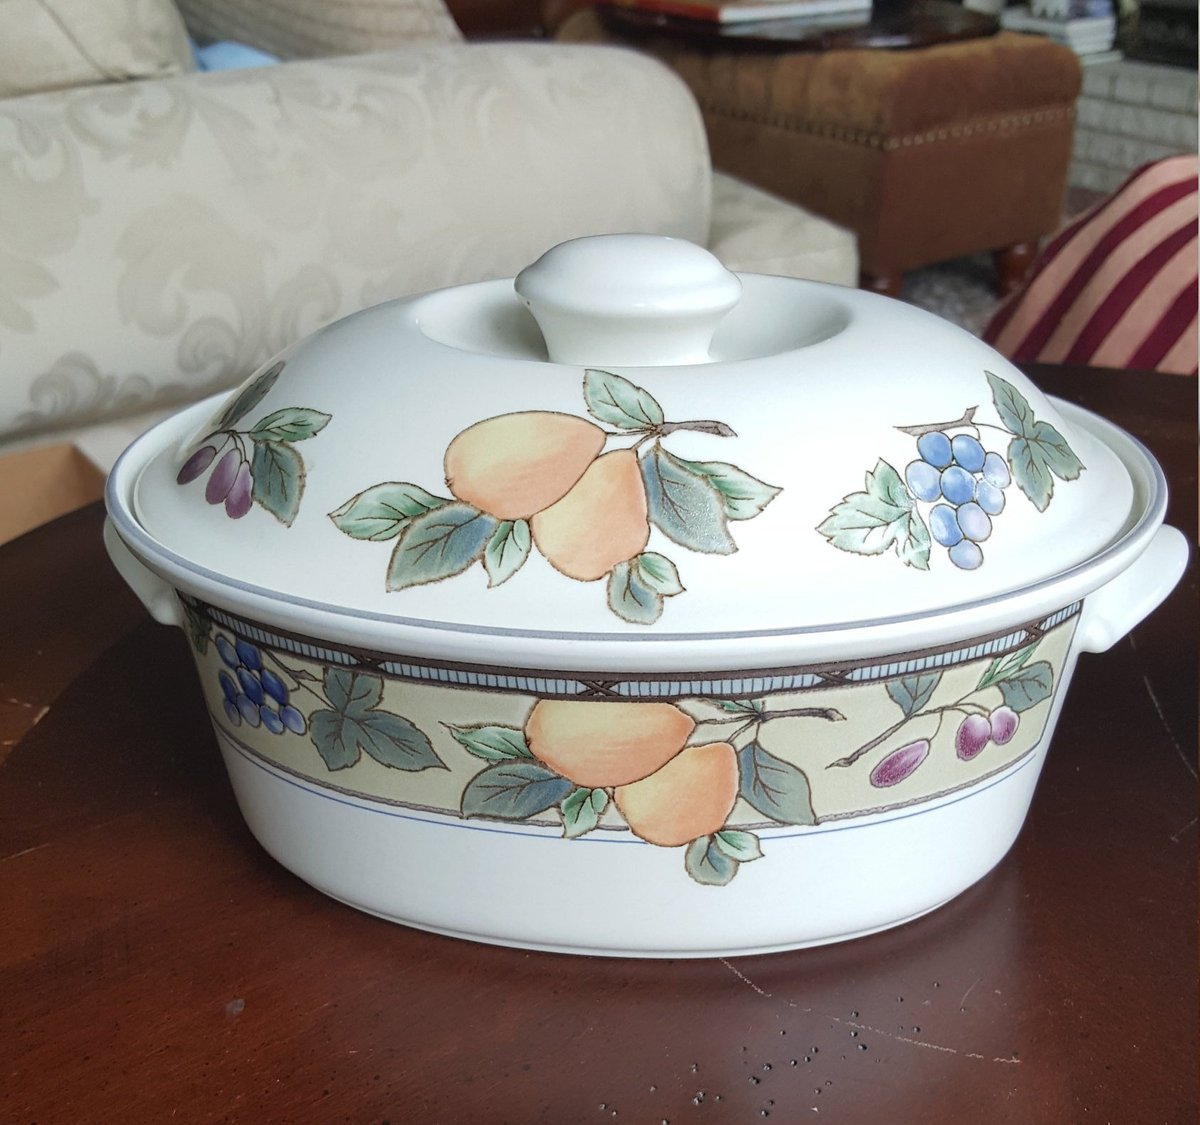 Excited to share the latest addition to my #etsy shop: MIKASA Oval Casserole with Lid 1.5 Quart in the Garden Harvest Pattern with Fruit Motif Replacement China Set Wedding gift Formal Dinnerware https://t.co/TPIyg97n7v #beige #thanksgiving #orange #wedding #gardenharv https://t.co/6bw52pDrfz